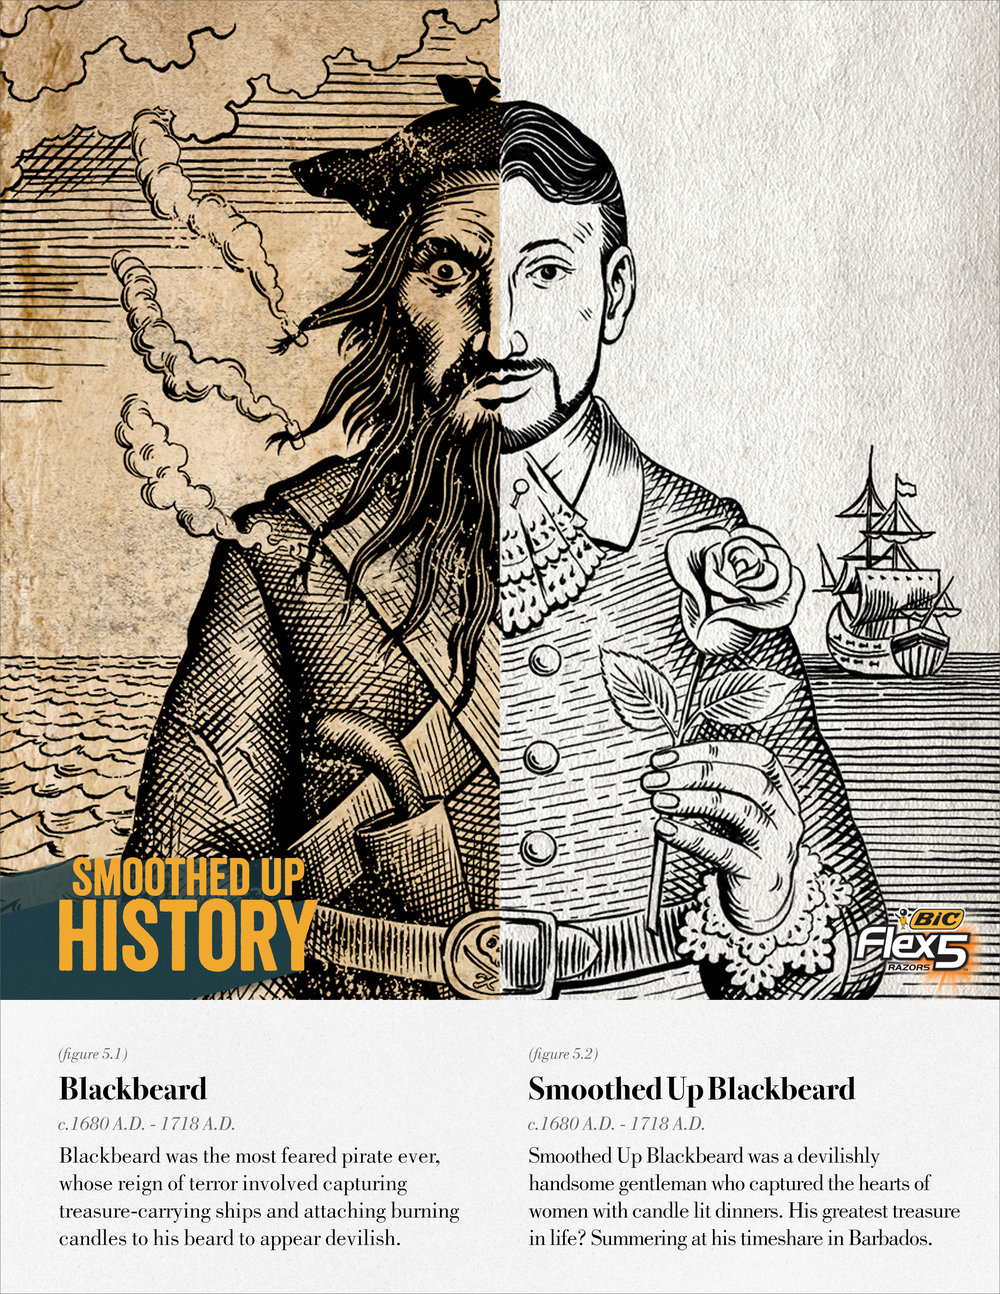 SmoothedUpHistory_Textbook_Layout_0004_Blackbeard.jpg